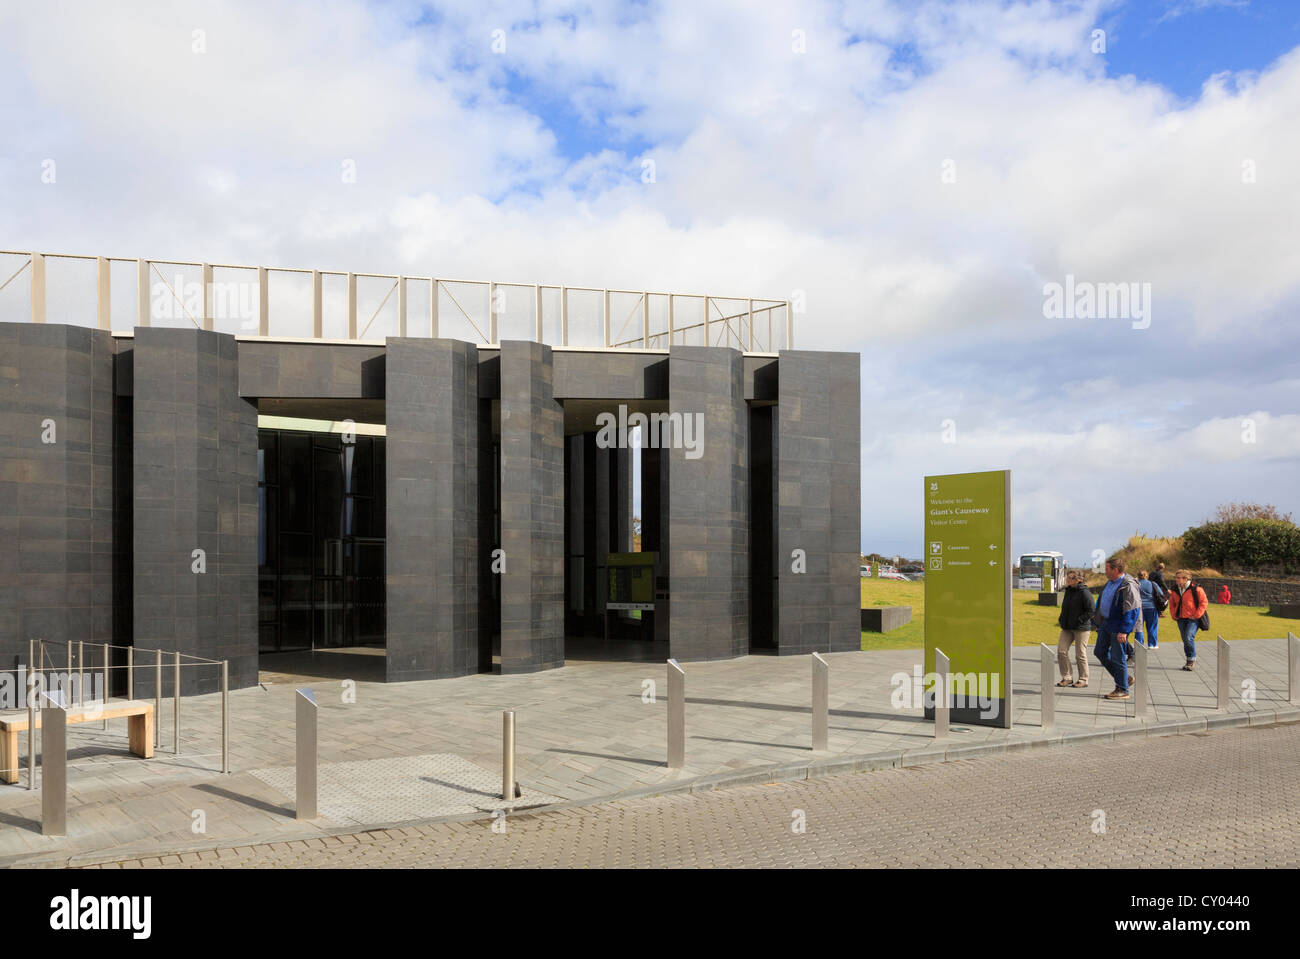 Visitors at the new Giant's Causeway visitor centre building near Bushmills, County Antrim, Northern Ireland, UK Stock Photo